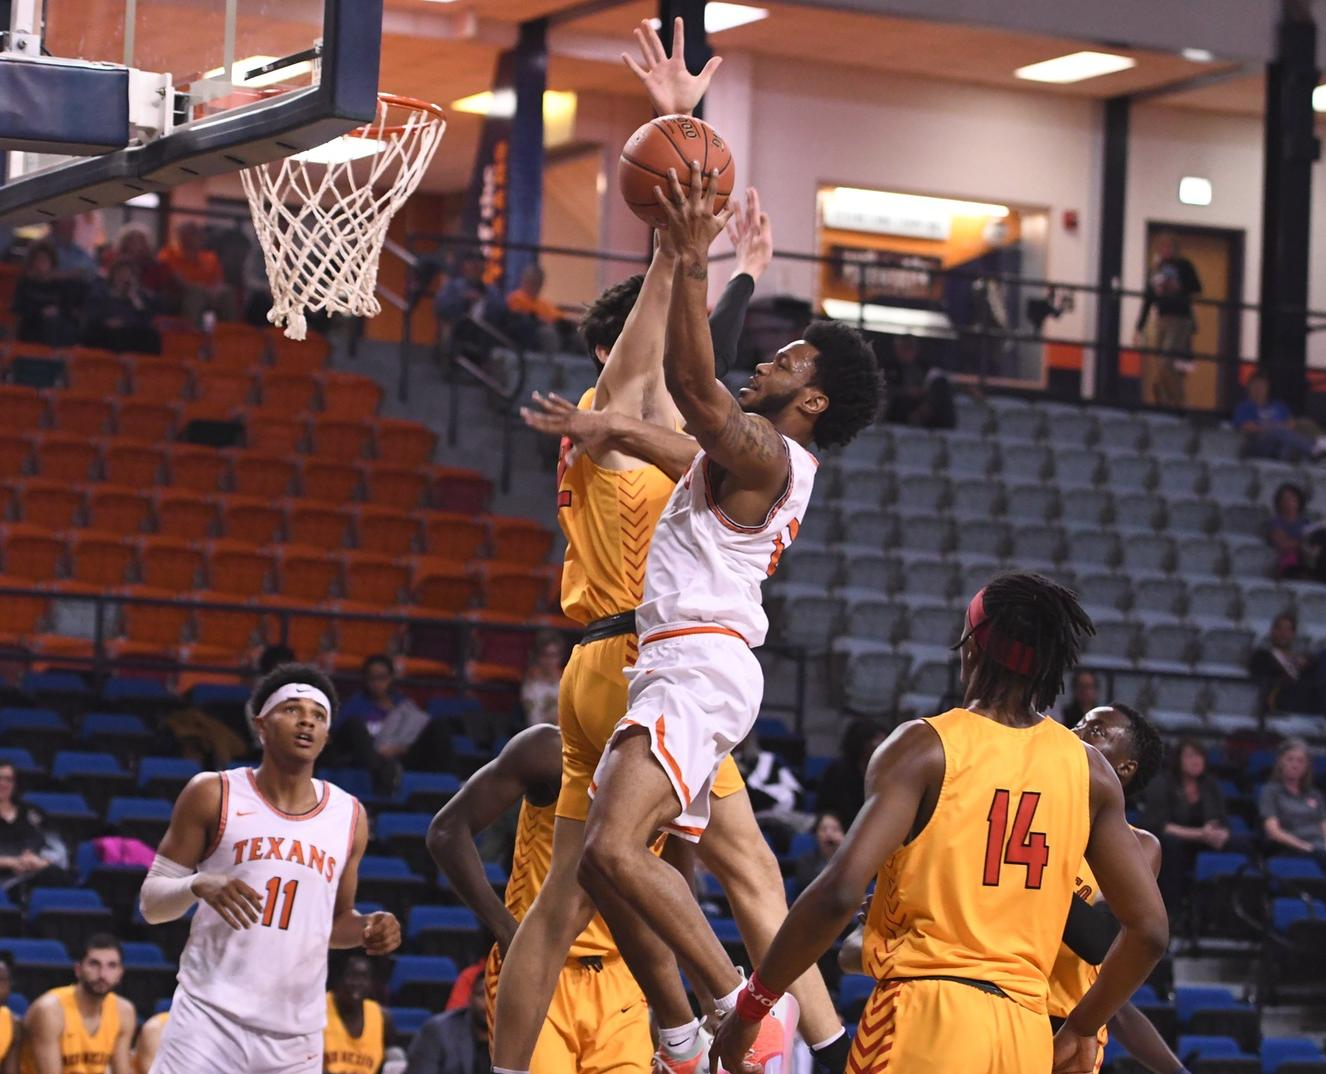 Person's season-high 22 points lead Texans past Thunderbirds 61-53 Monday